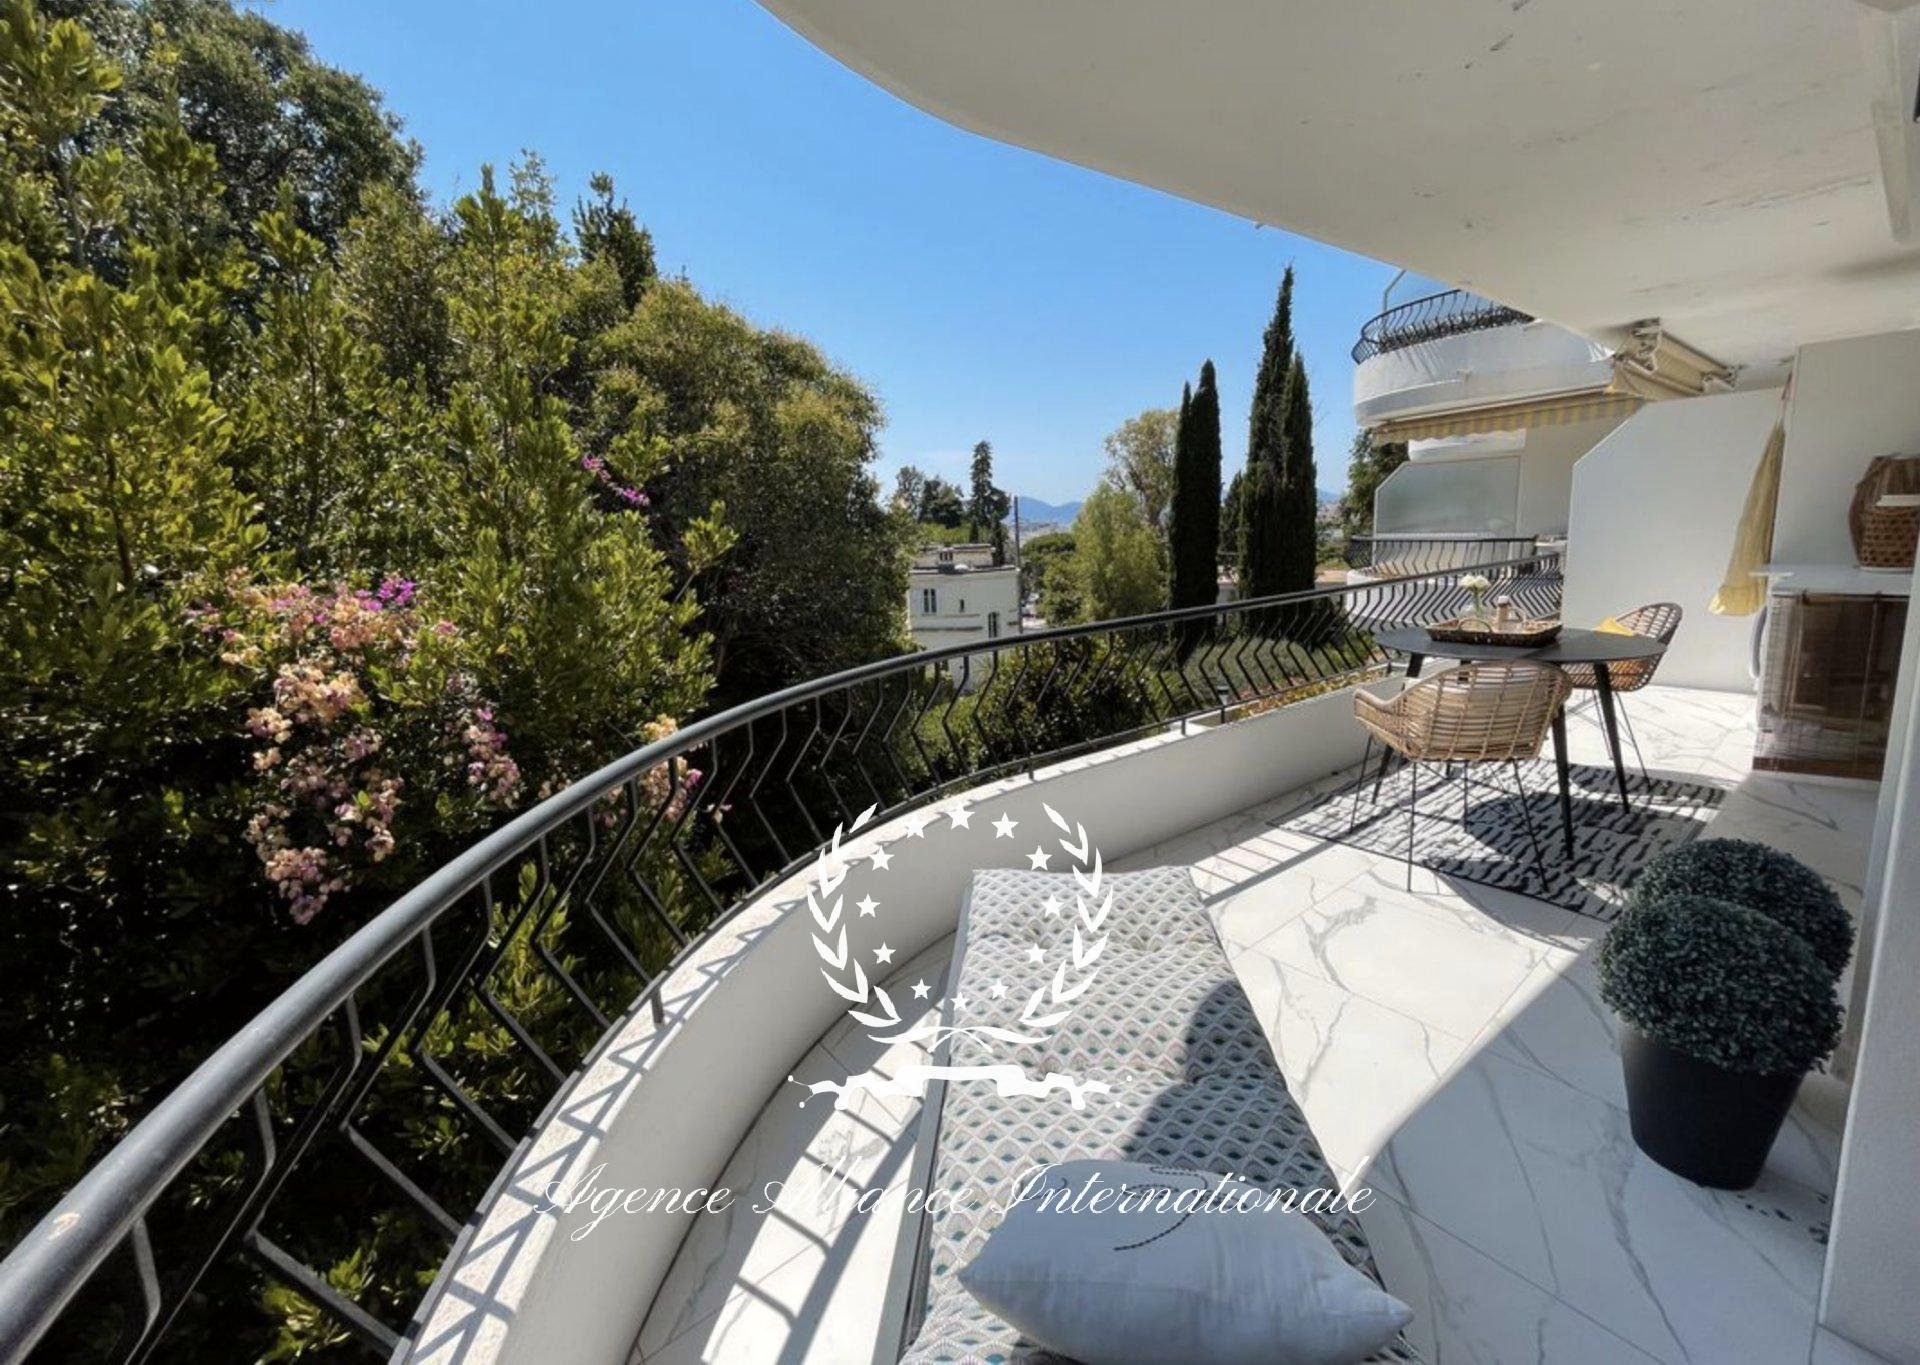 RENOVATED 1 BEDROOM - LARGE SOUTH FULL TERRACE - AIR CONDITIONED